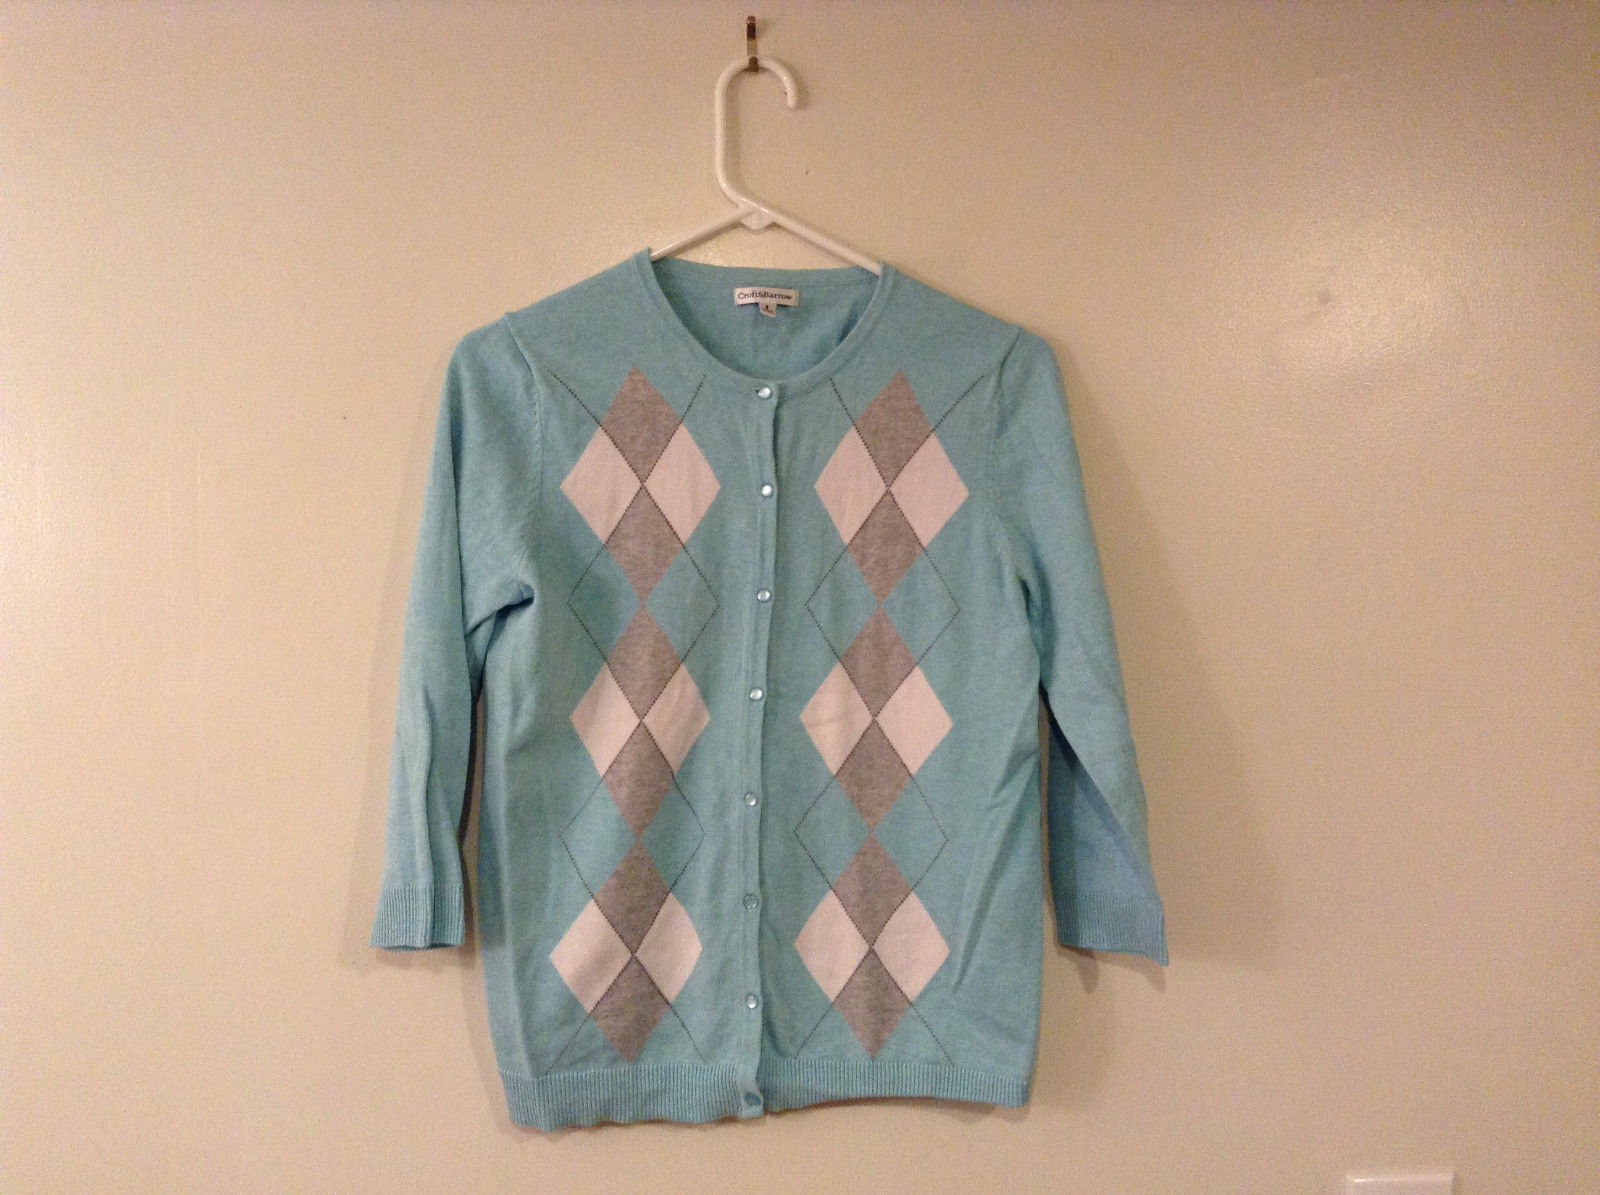 Croft & Barrow Women's Size S Light Cardigan Sweater Aqua Blue Argyle Diamond